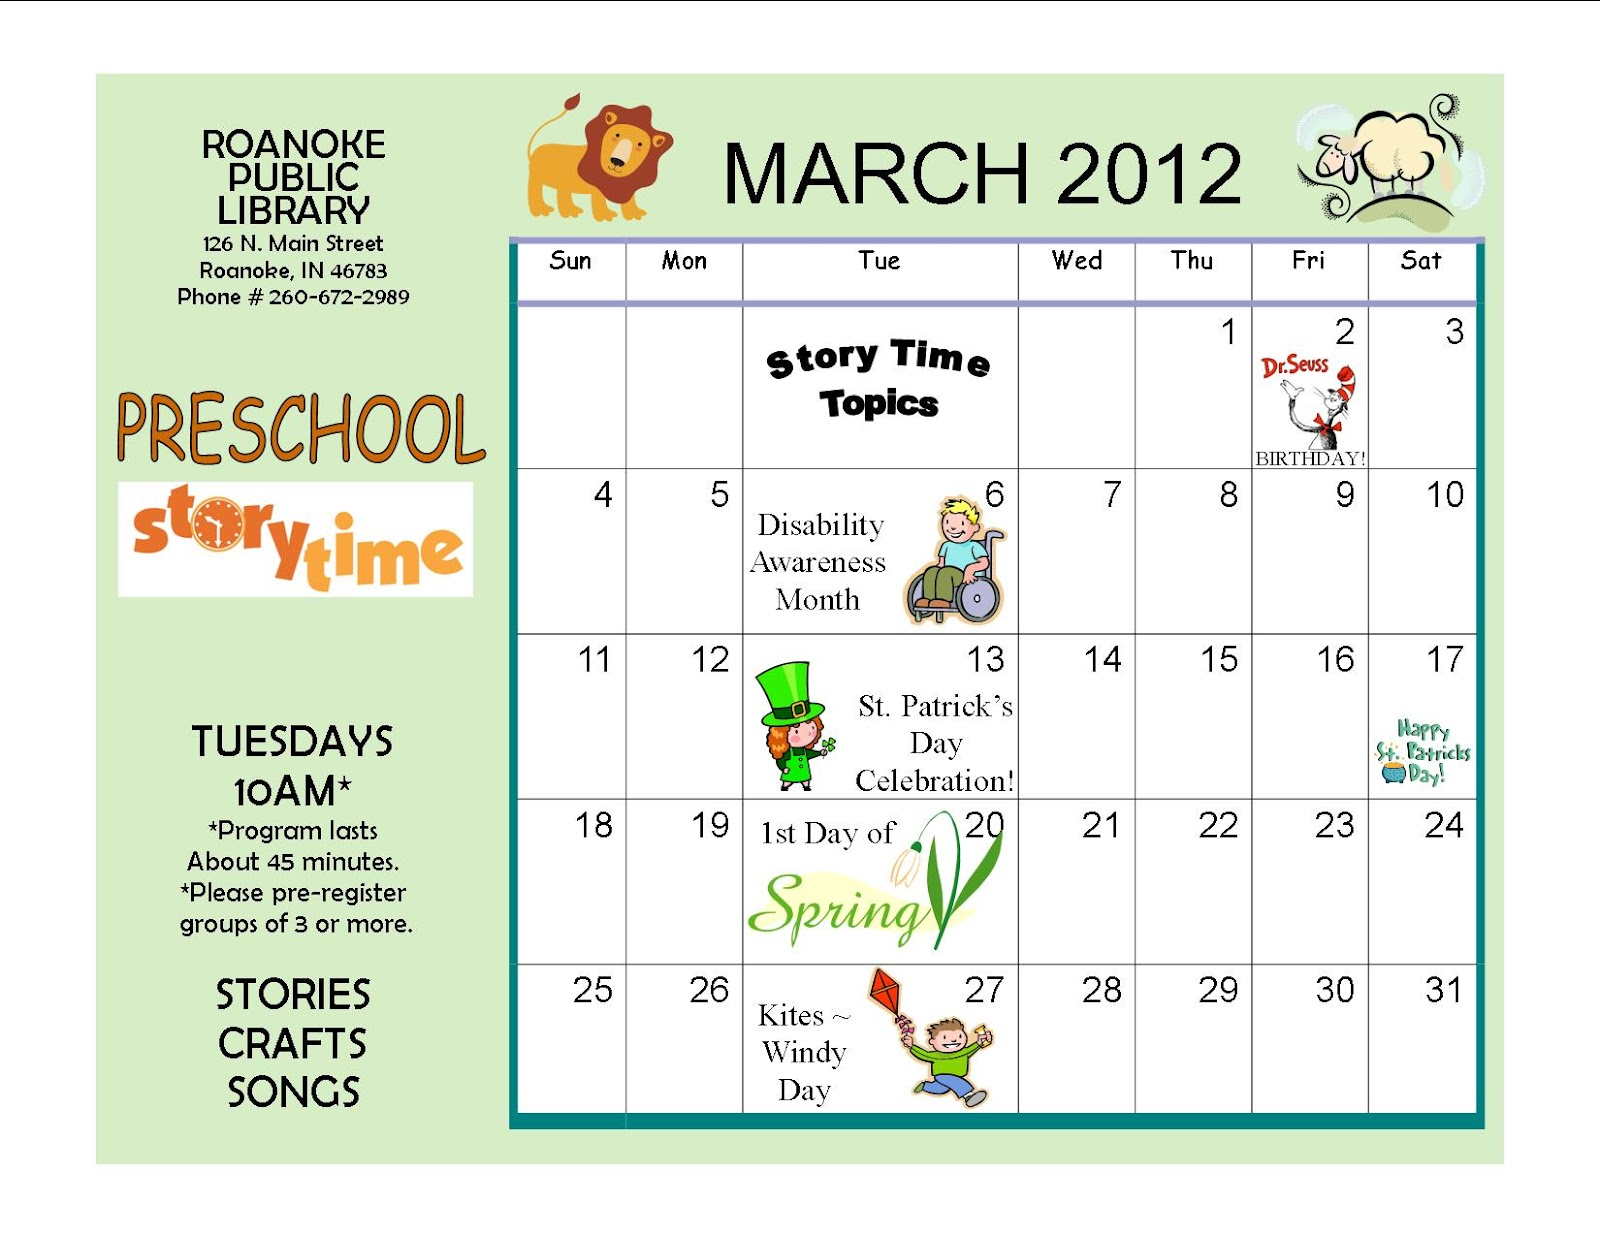 March Calendar Ideas : Kindergarten calendar on pinterest party invitations ideas